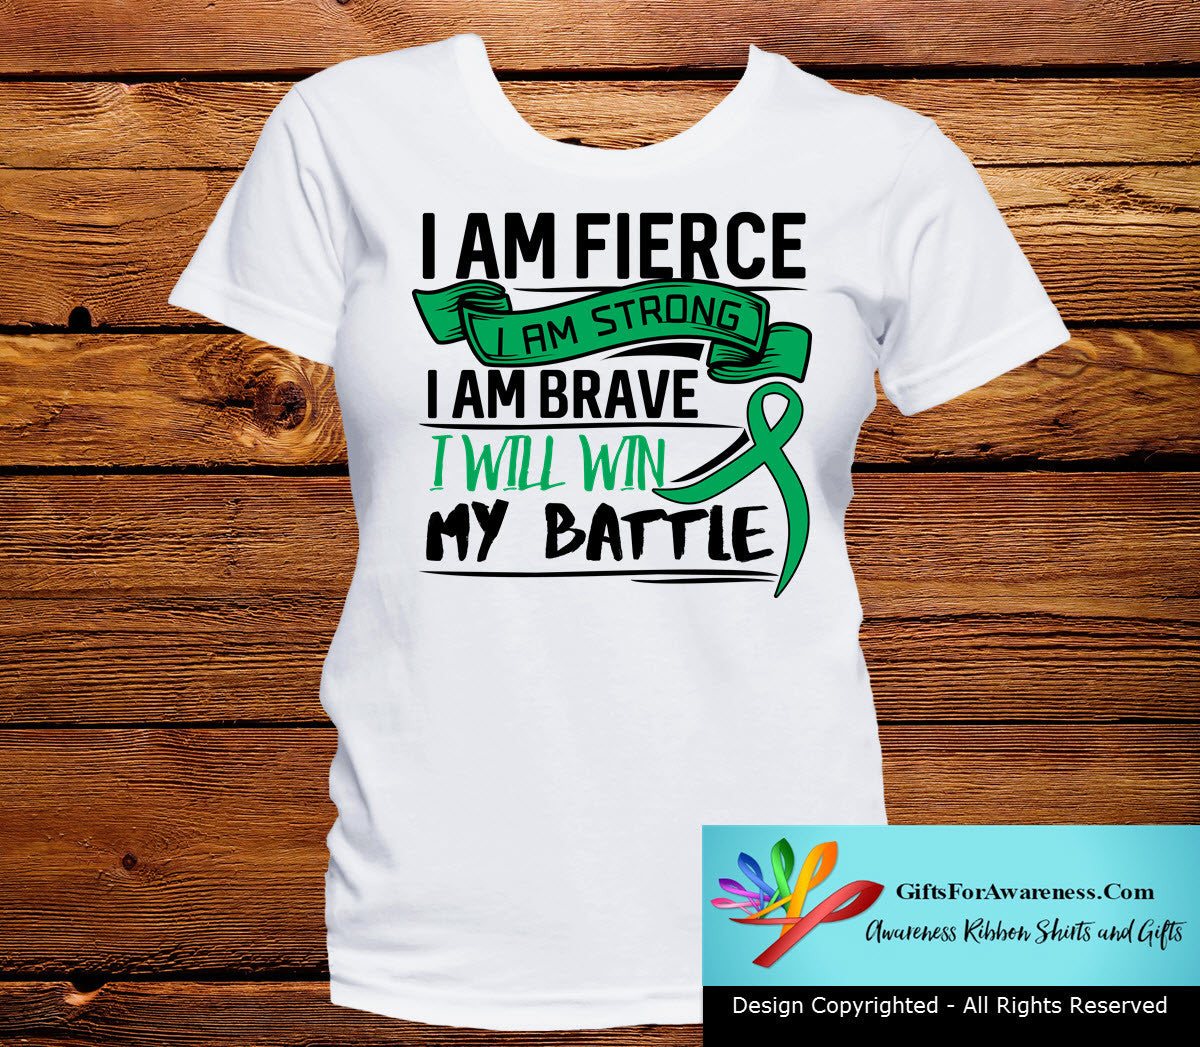 Liver Cancer I Am Fierce Strong and Brave Shirts - GiftsForAwareness